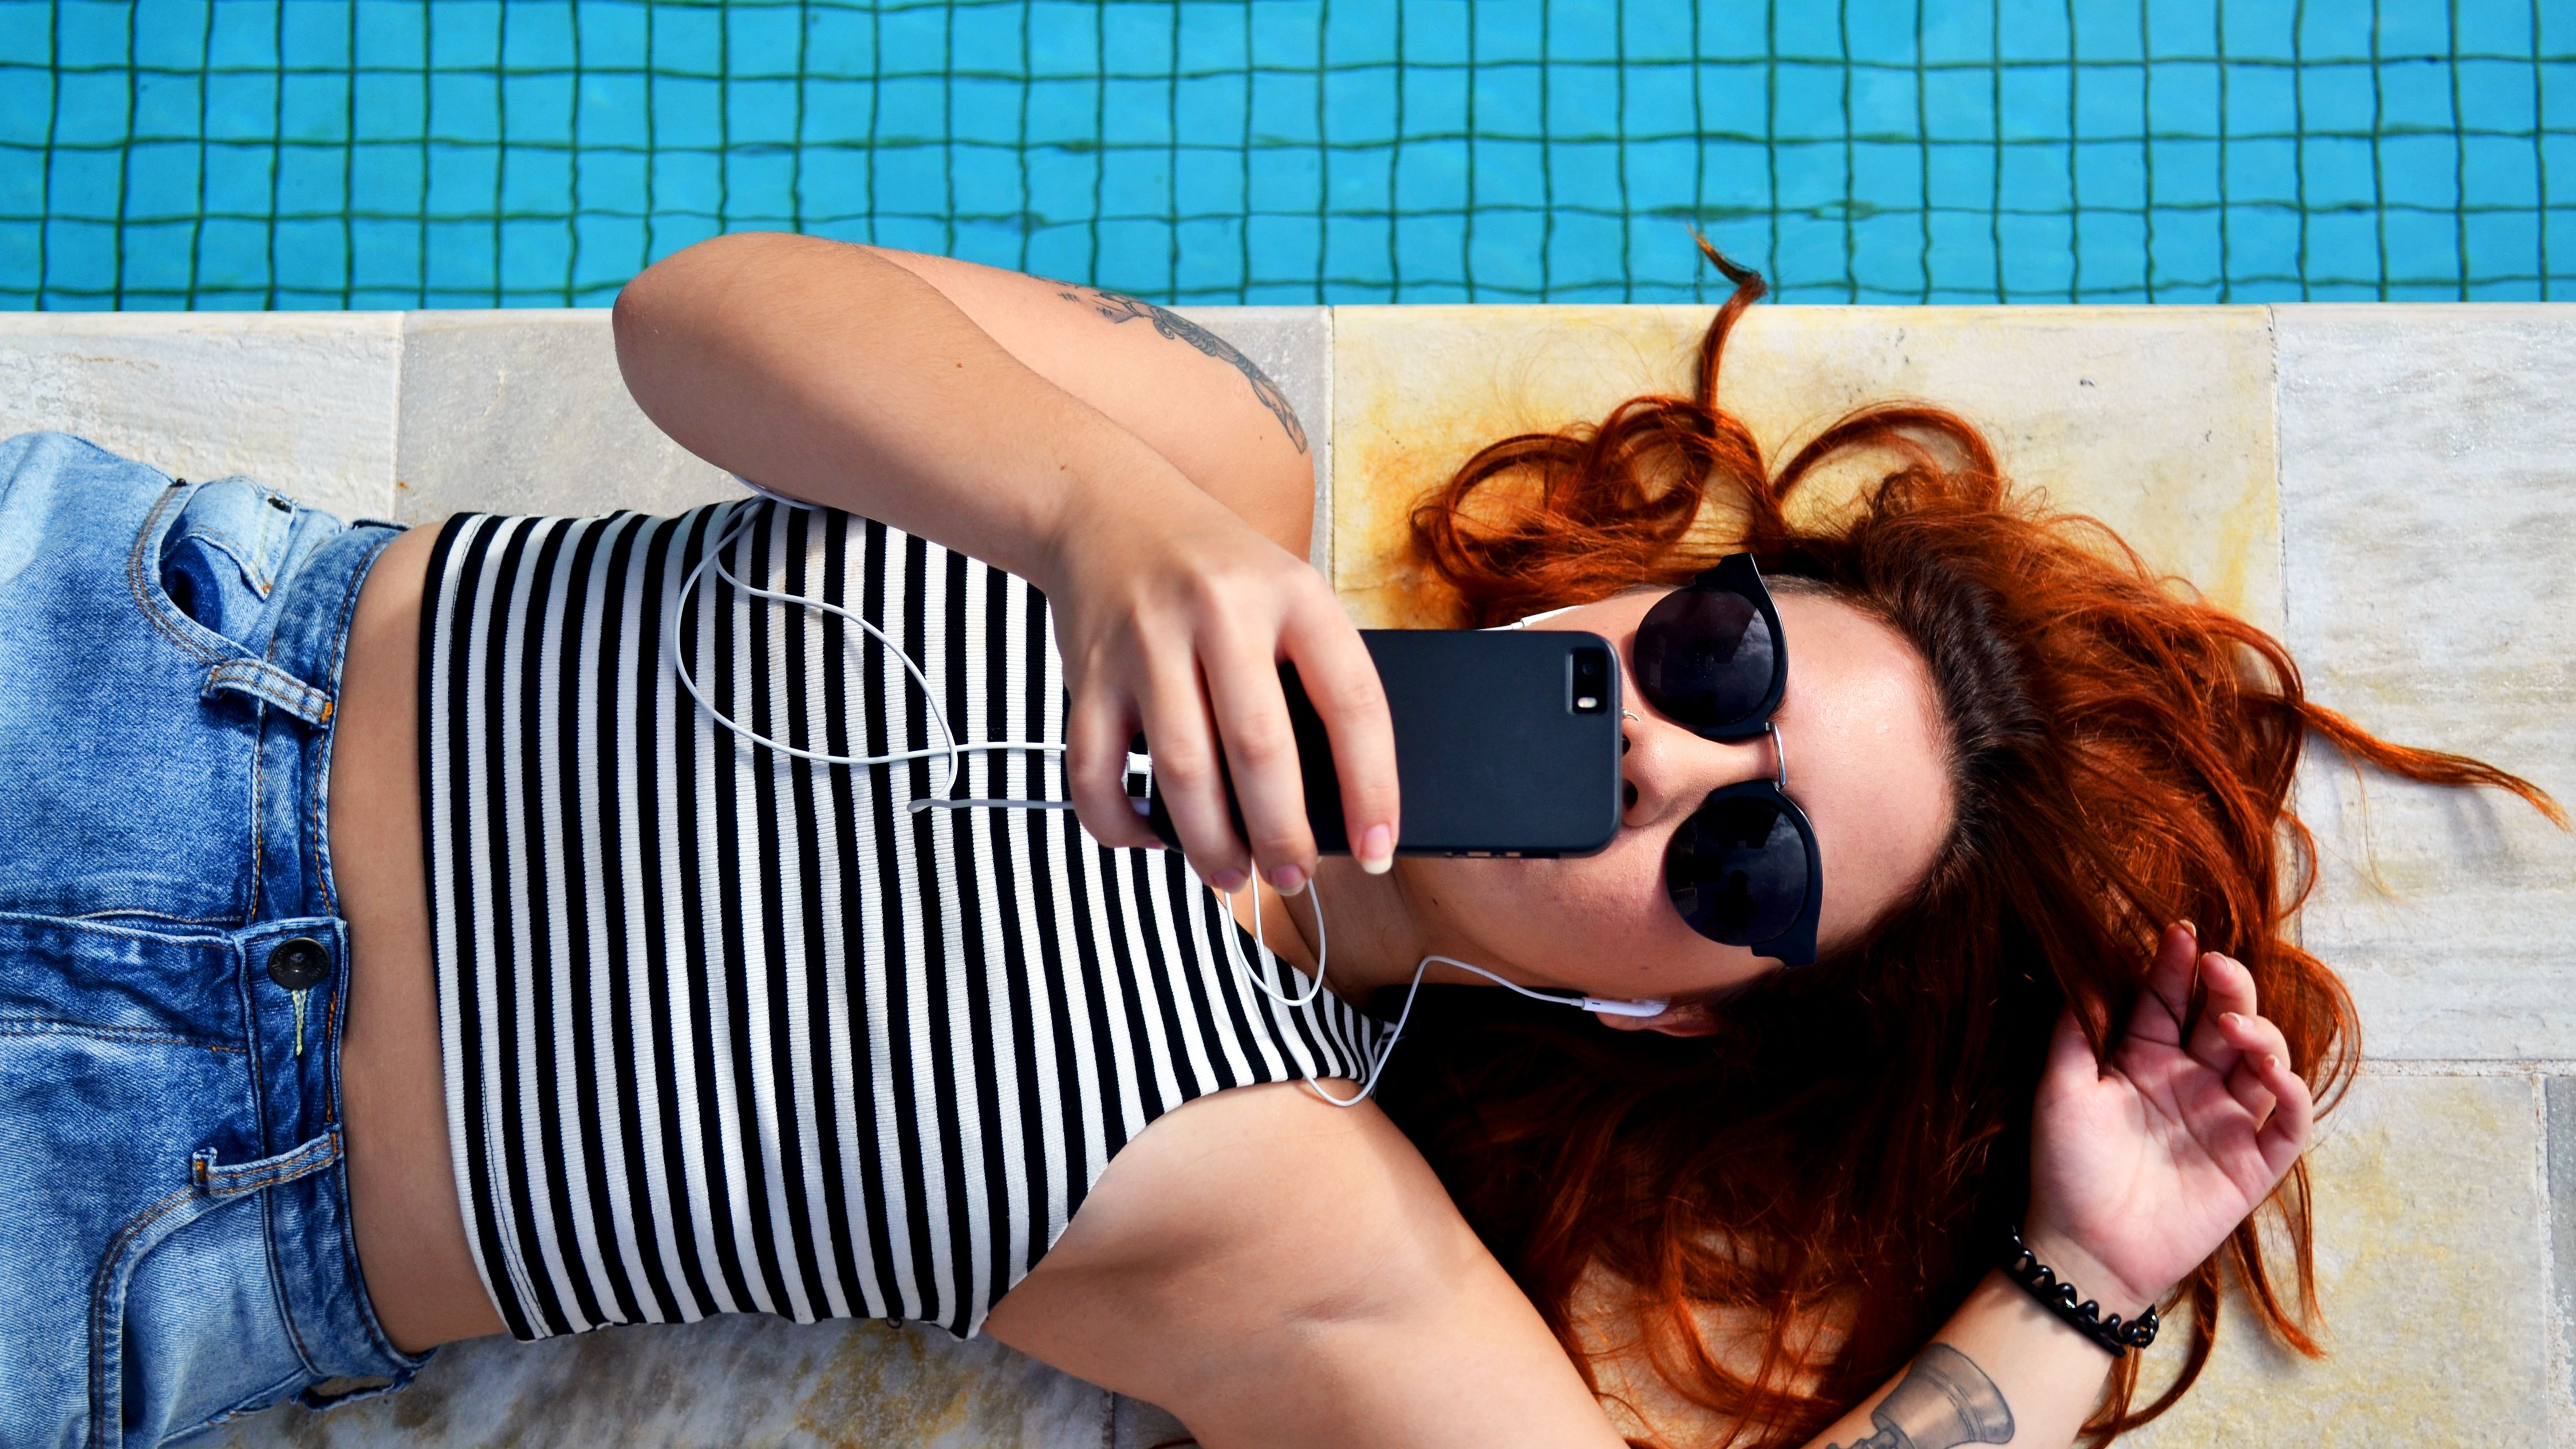 girl laying on her back and holding a cell phone next to a pool